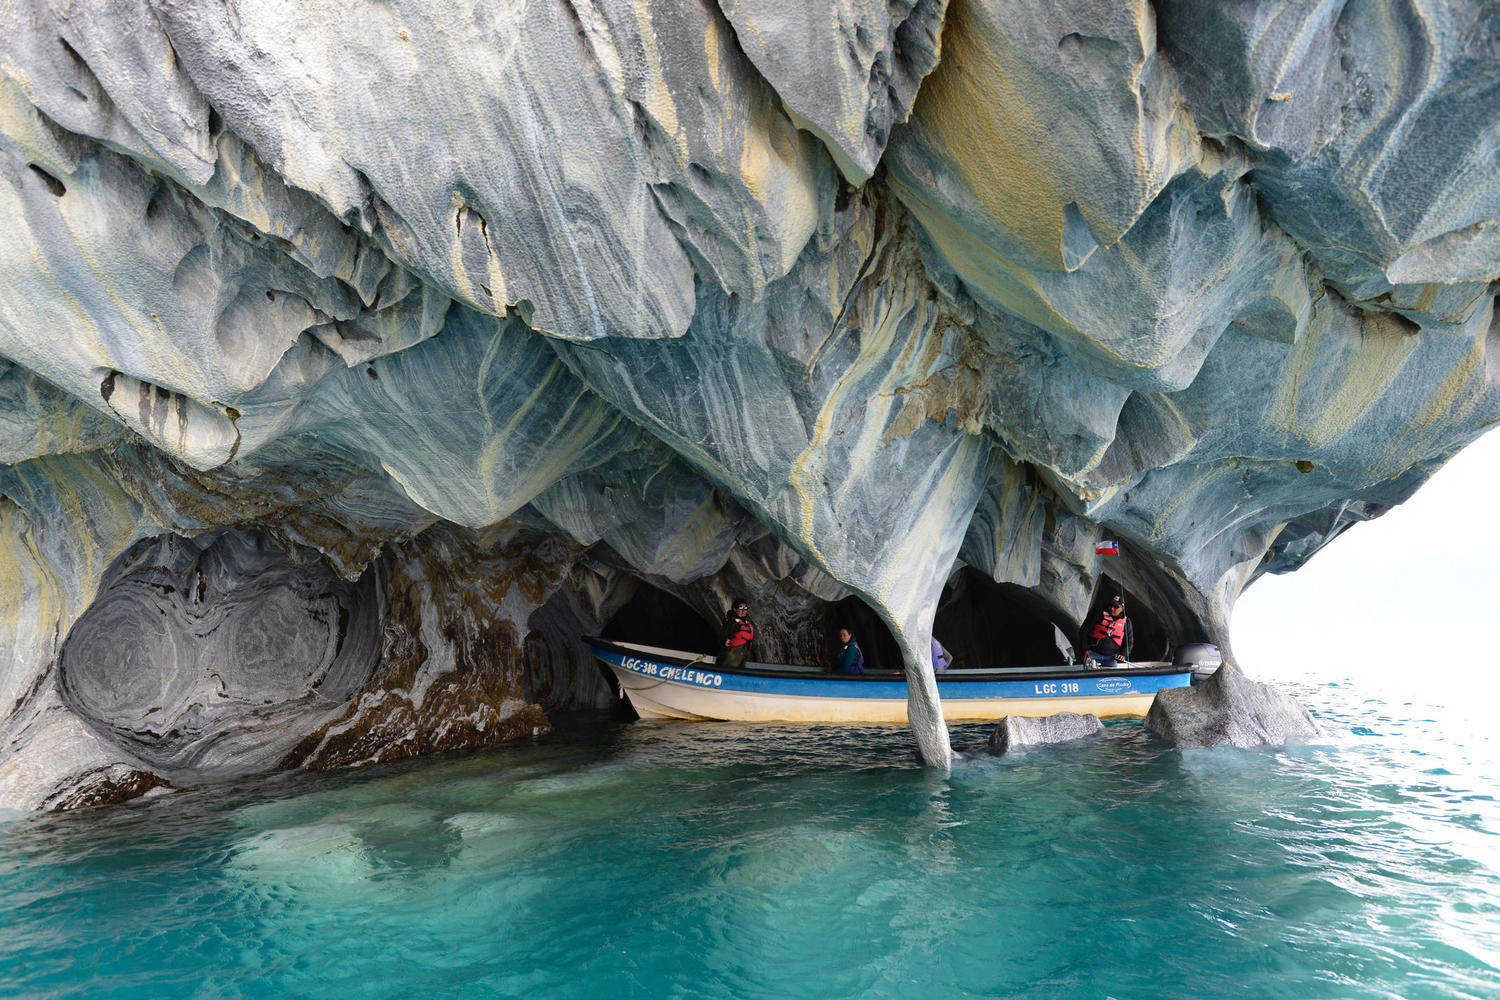 Exploring the Marble Caves by boat on the Carretera Austral